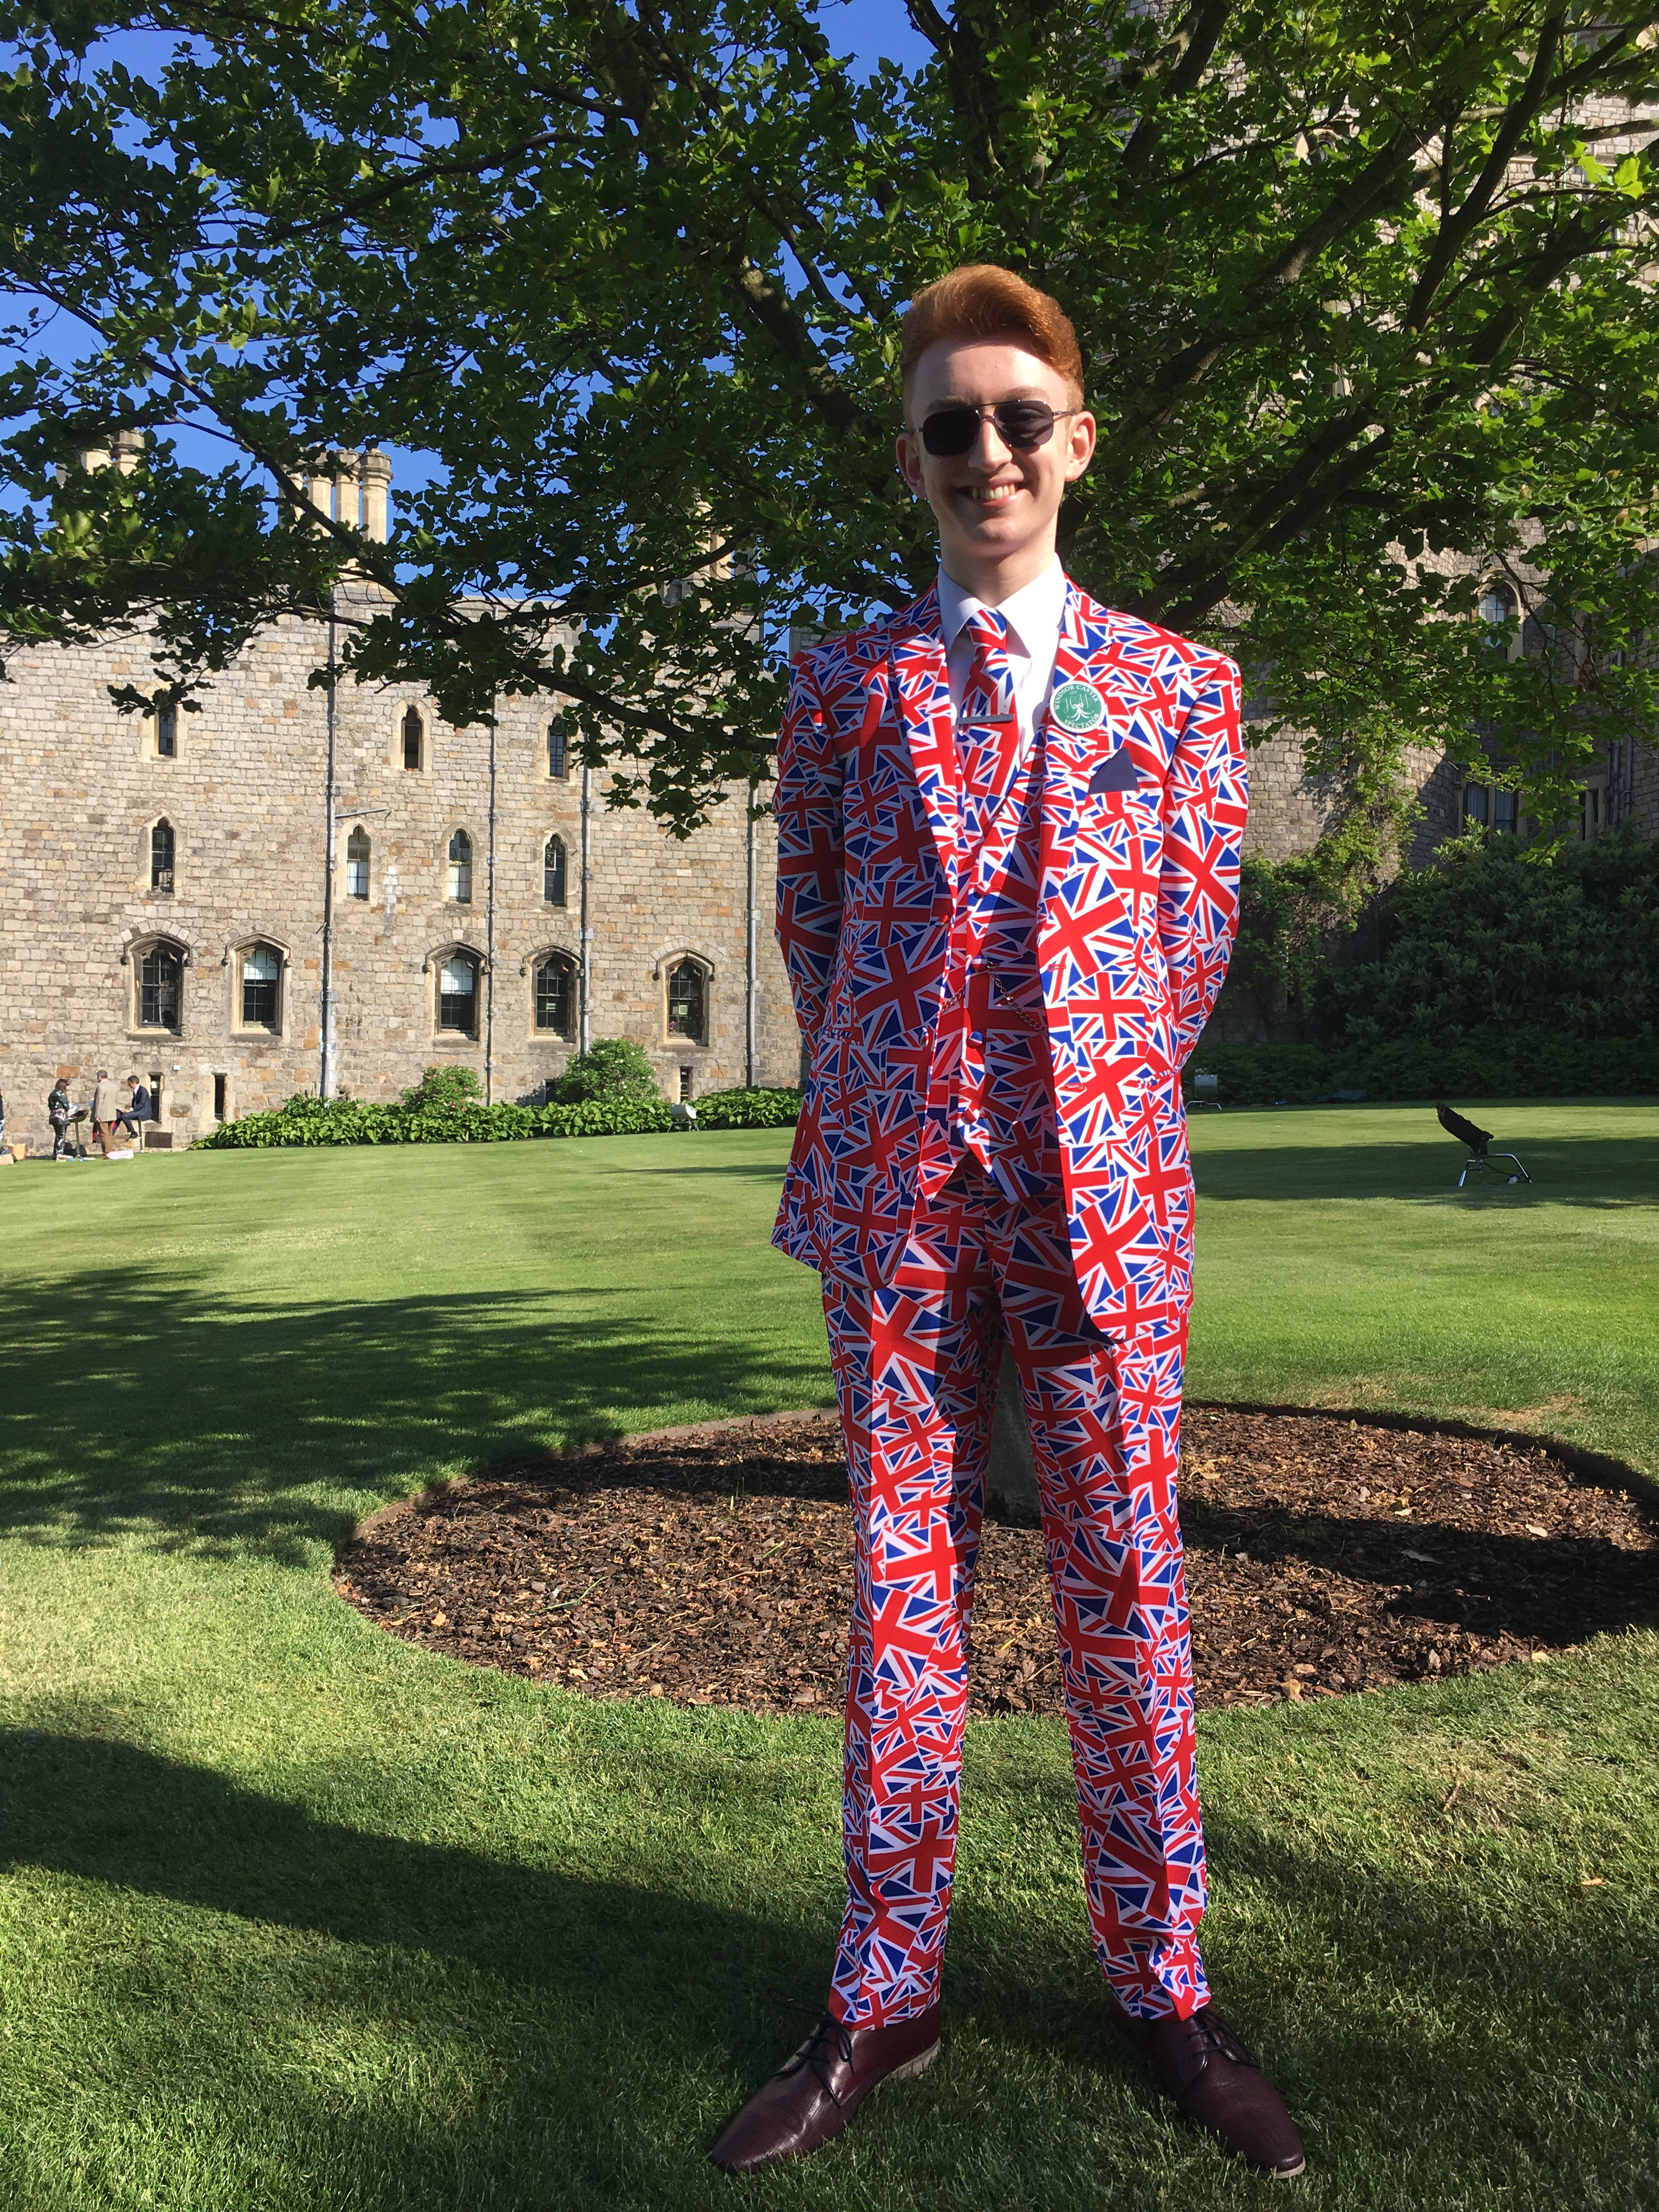 Alexander Willis, a politician from Newport, in the grounds of Windsor Castle on May 19, 2018.